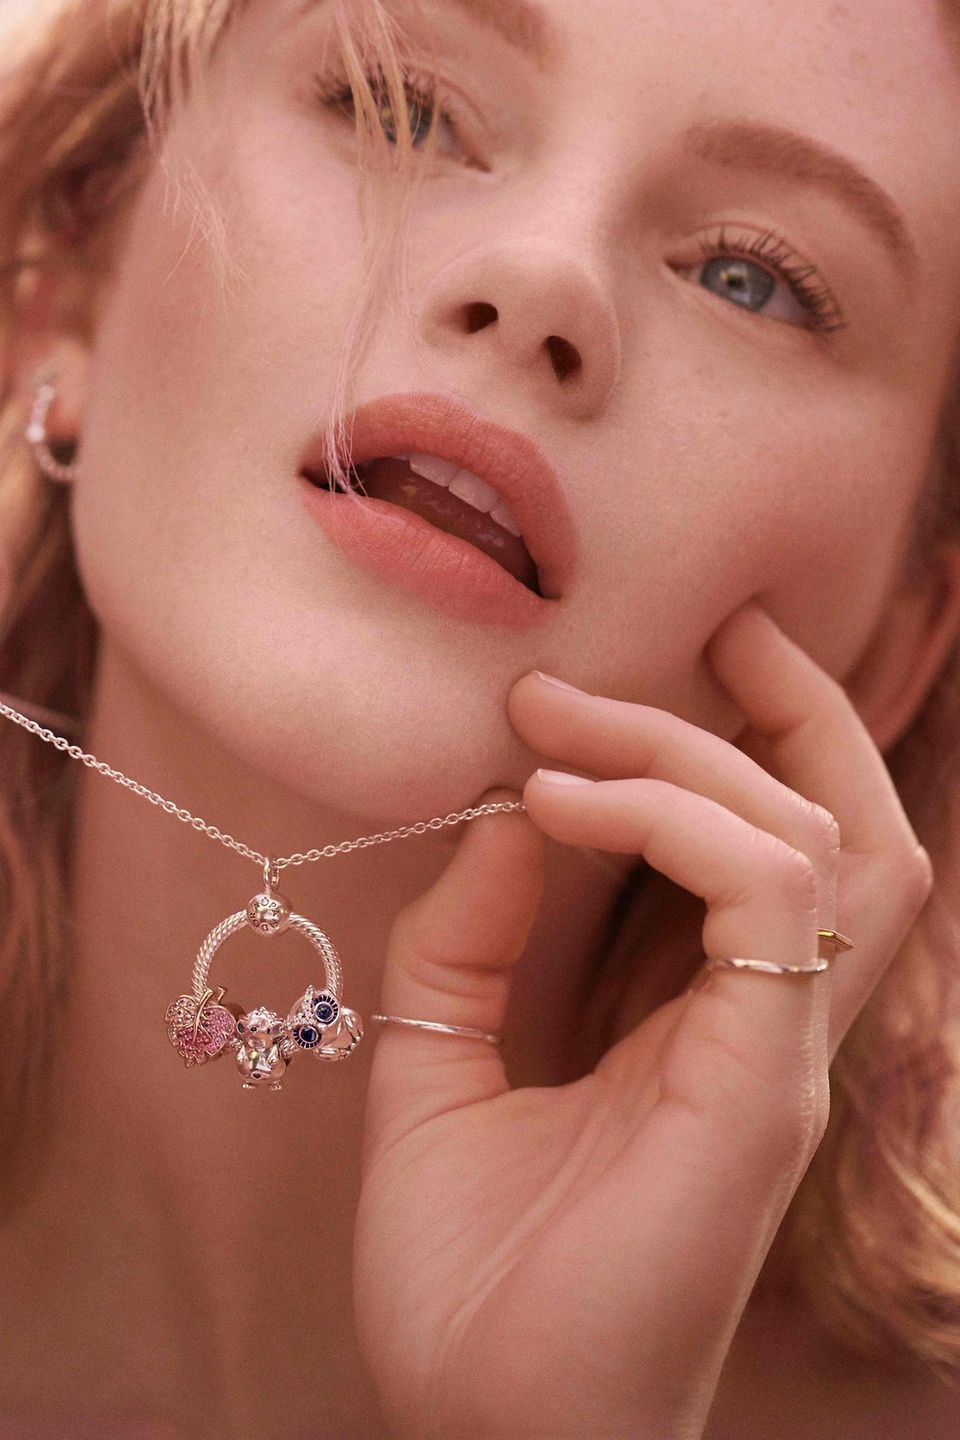 New Pandora Moment O Pendant with charms from the Autumn Collection 2019